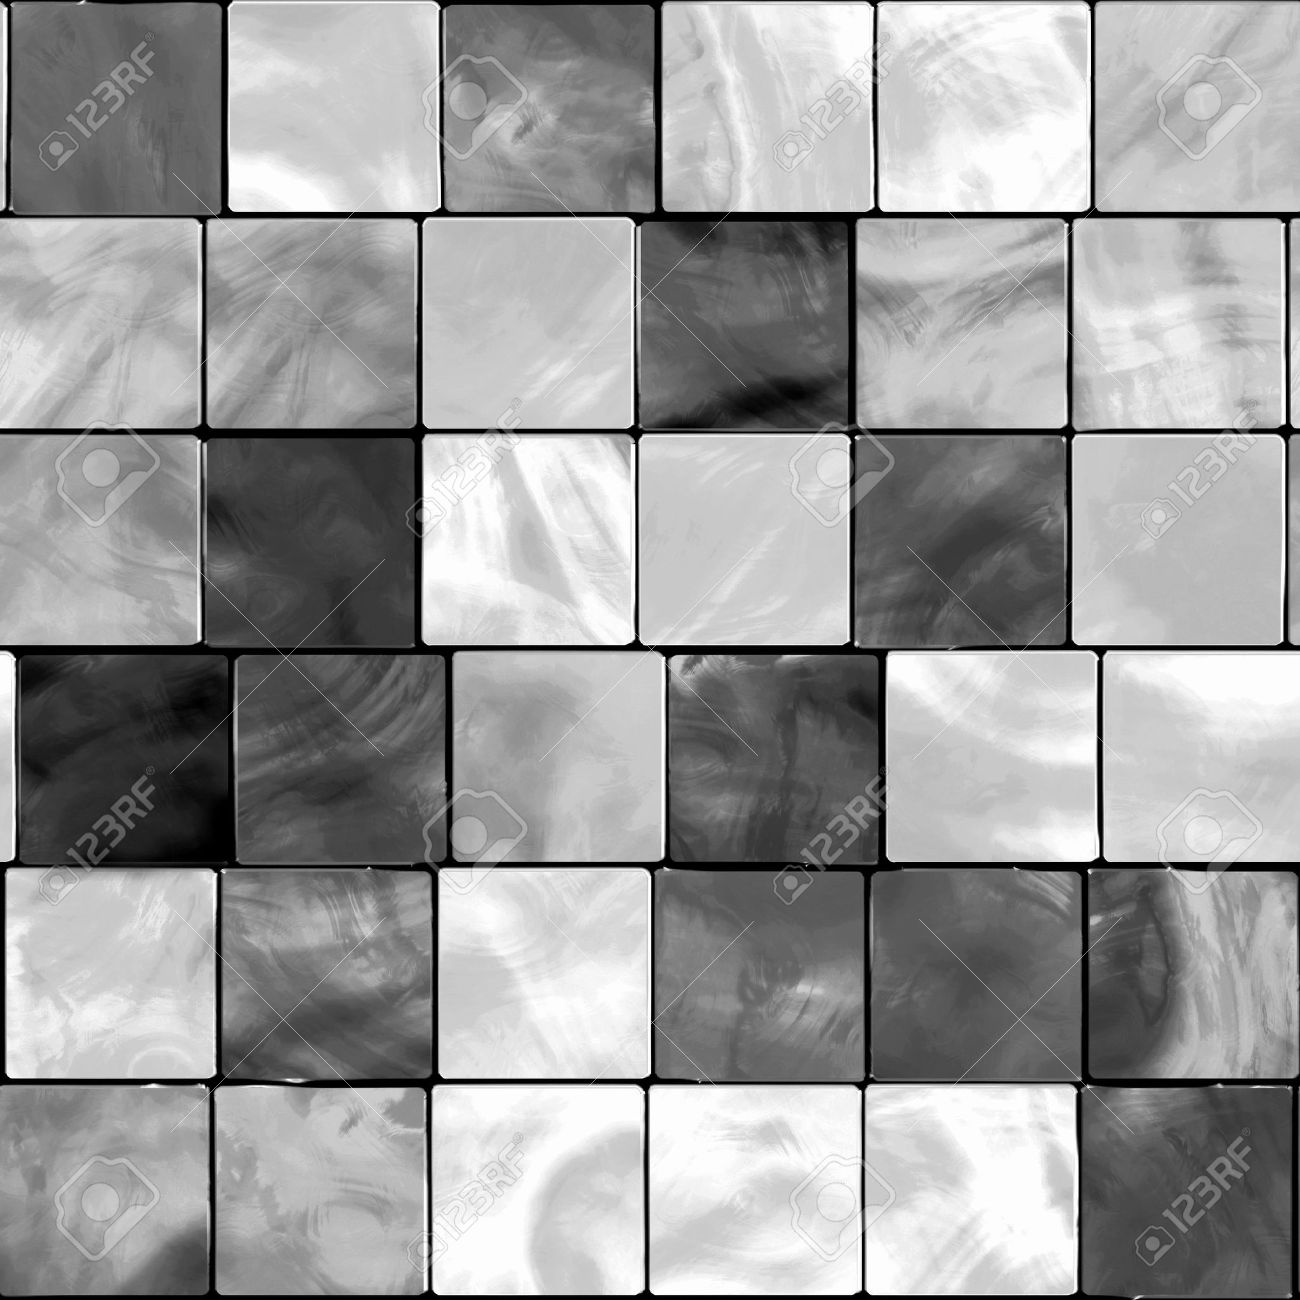 Seamless White And Gray Tone Tiles Stock Photo   5521649. Seamless White And Gray Tone Tiles Stock Photo  Picture And